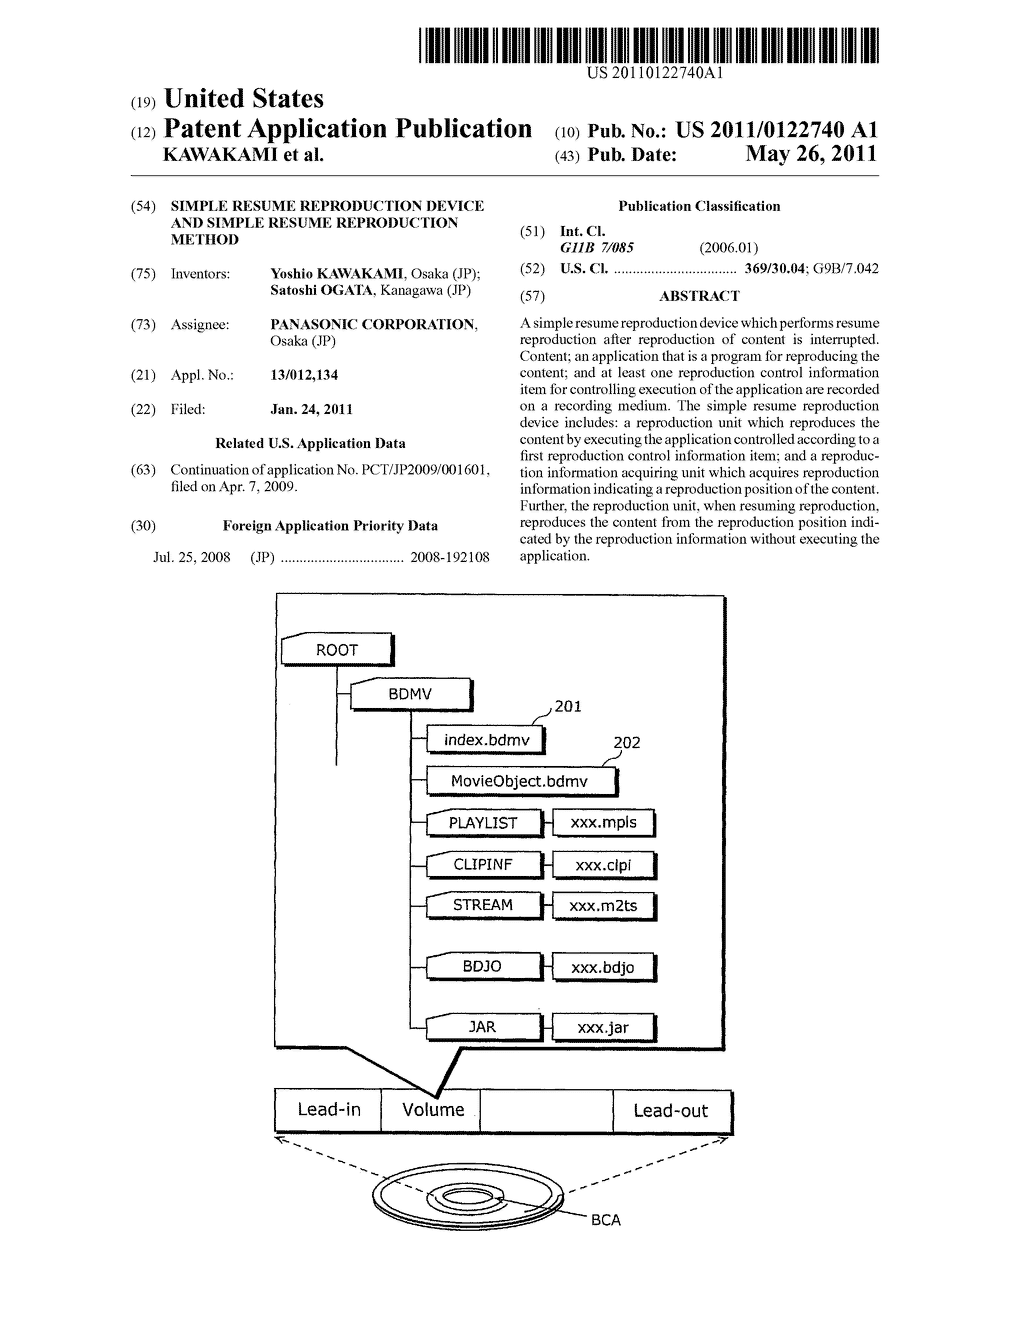 SIMPLE RESUME REPRODUCTION DEVICE AND METHOD